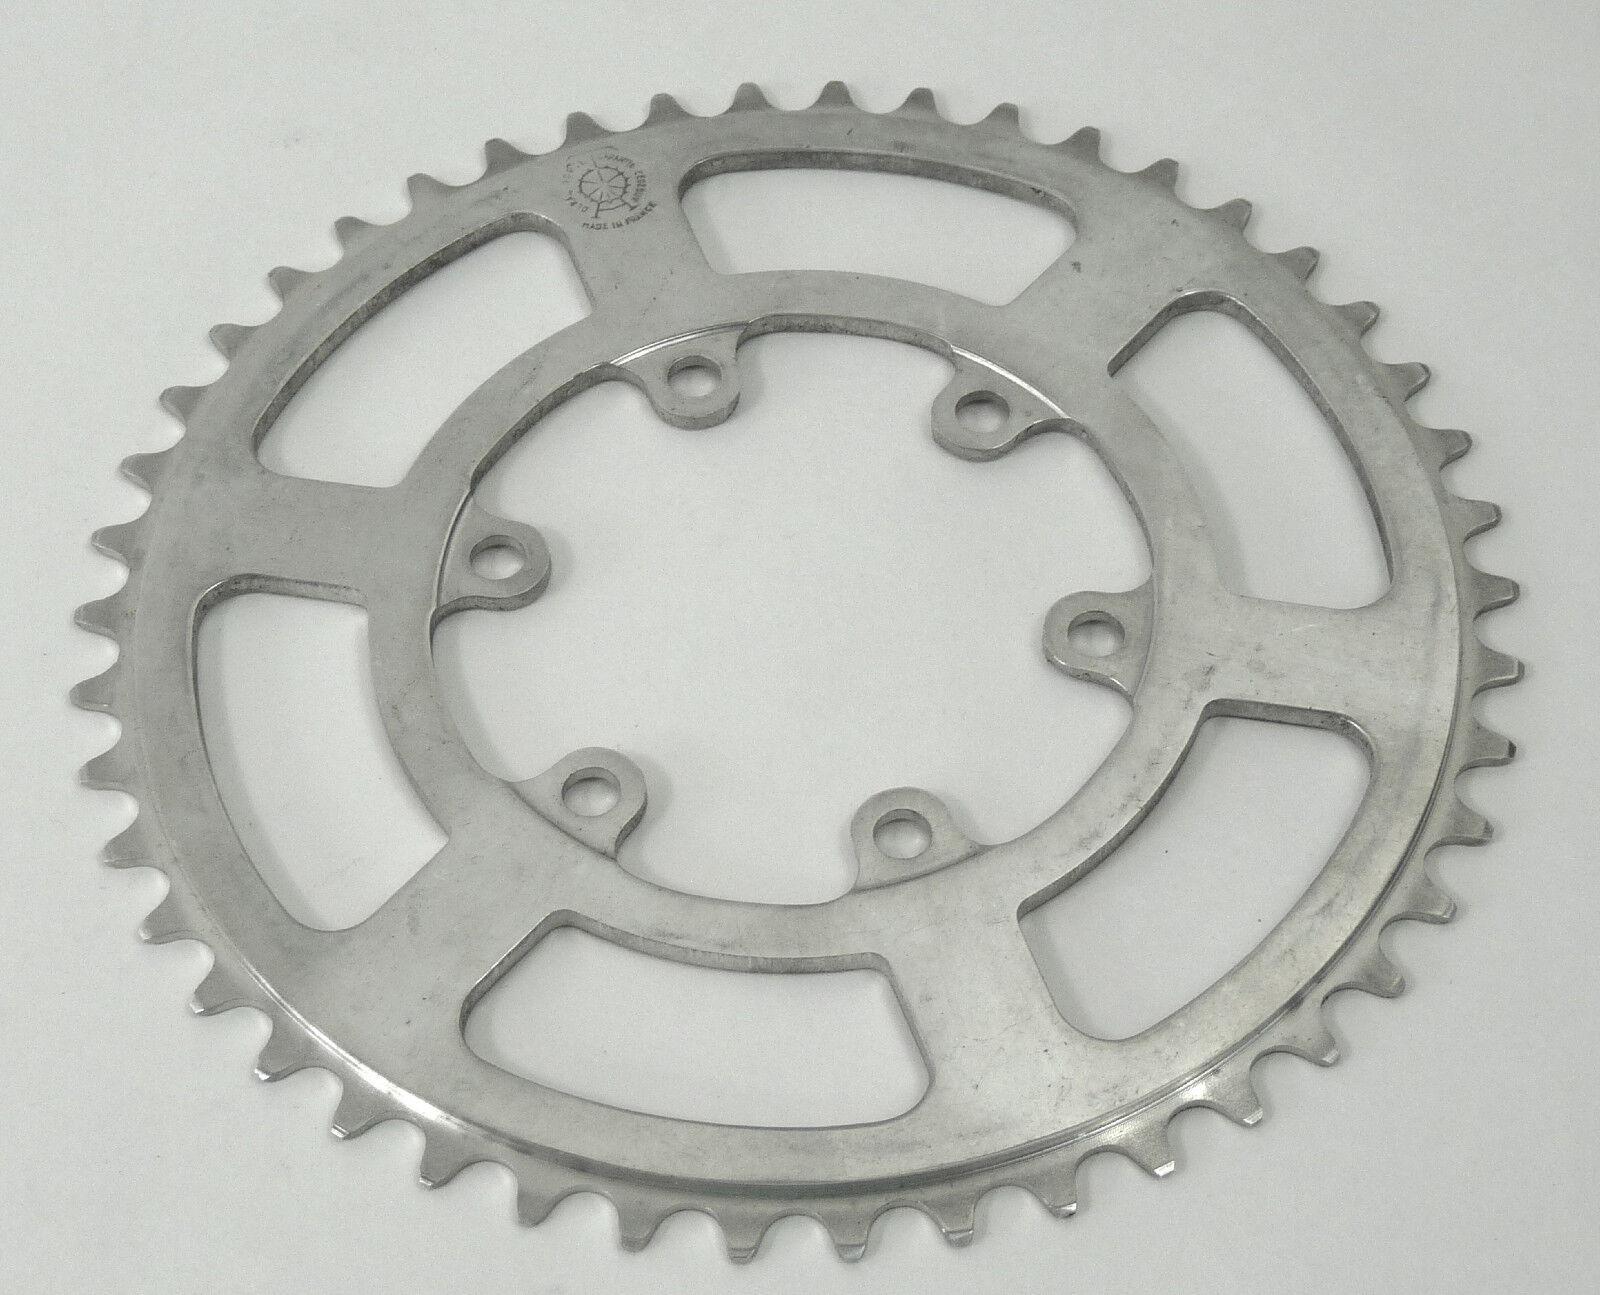 T.A. Chainring 46T REINFORCED Road 80 BCD TA REF  208 VINTAGE 3 32  46 NOS